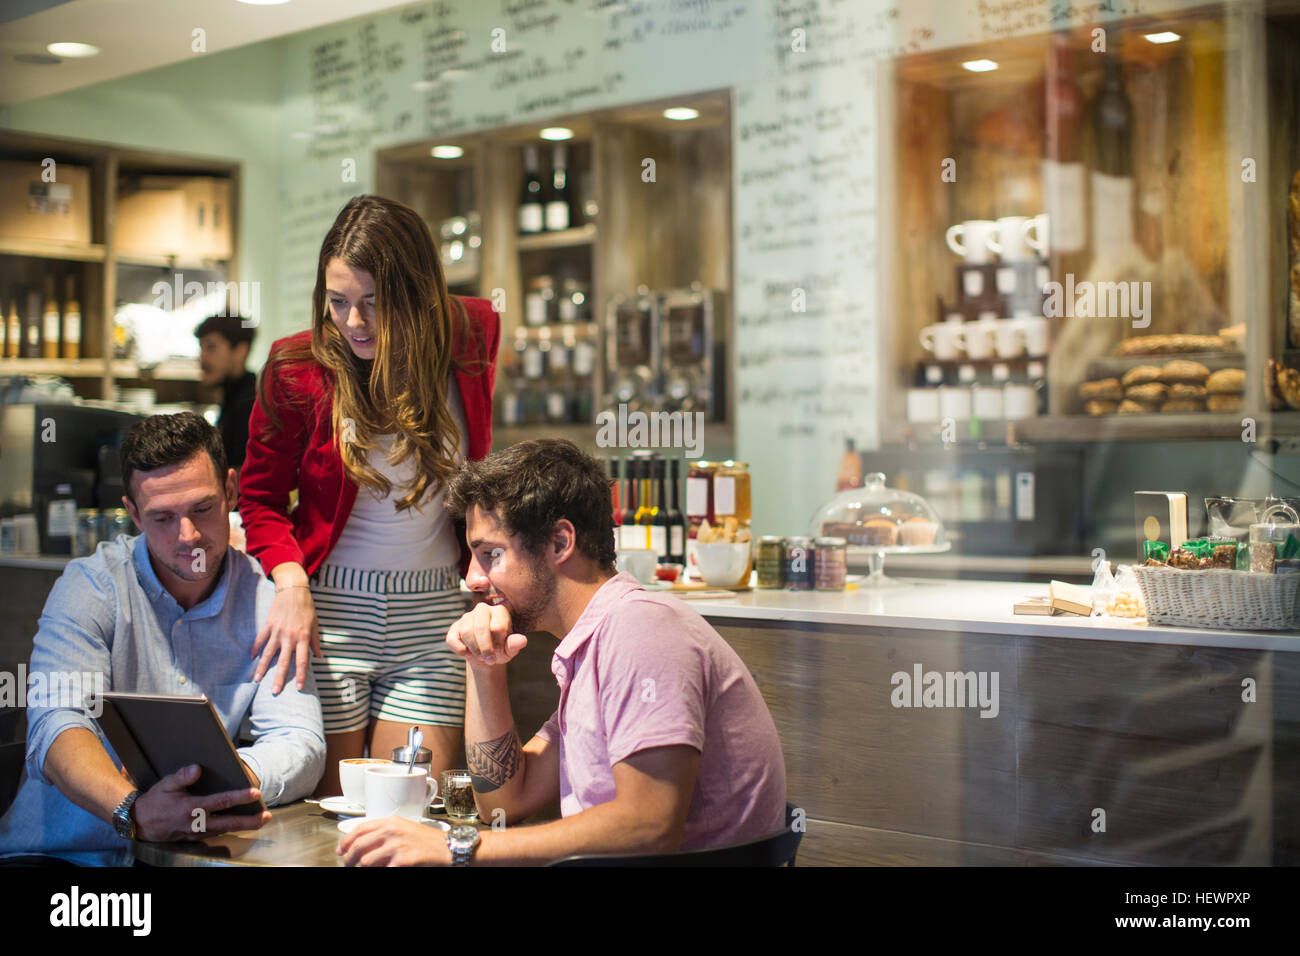 Male and female friends in cafe looking at digital tablet - Stock Image